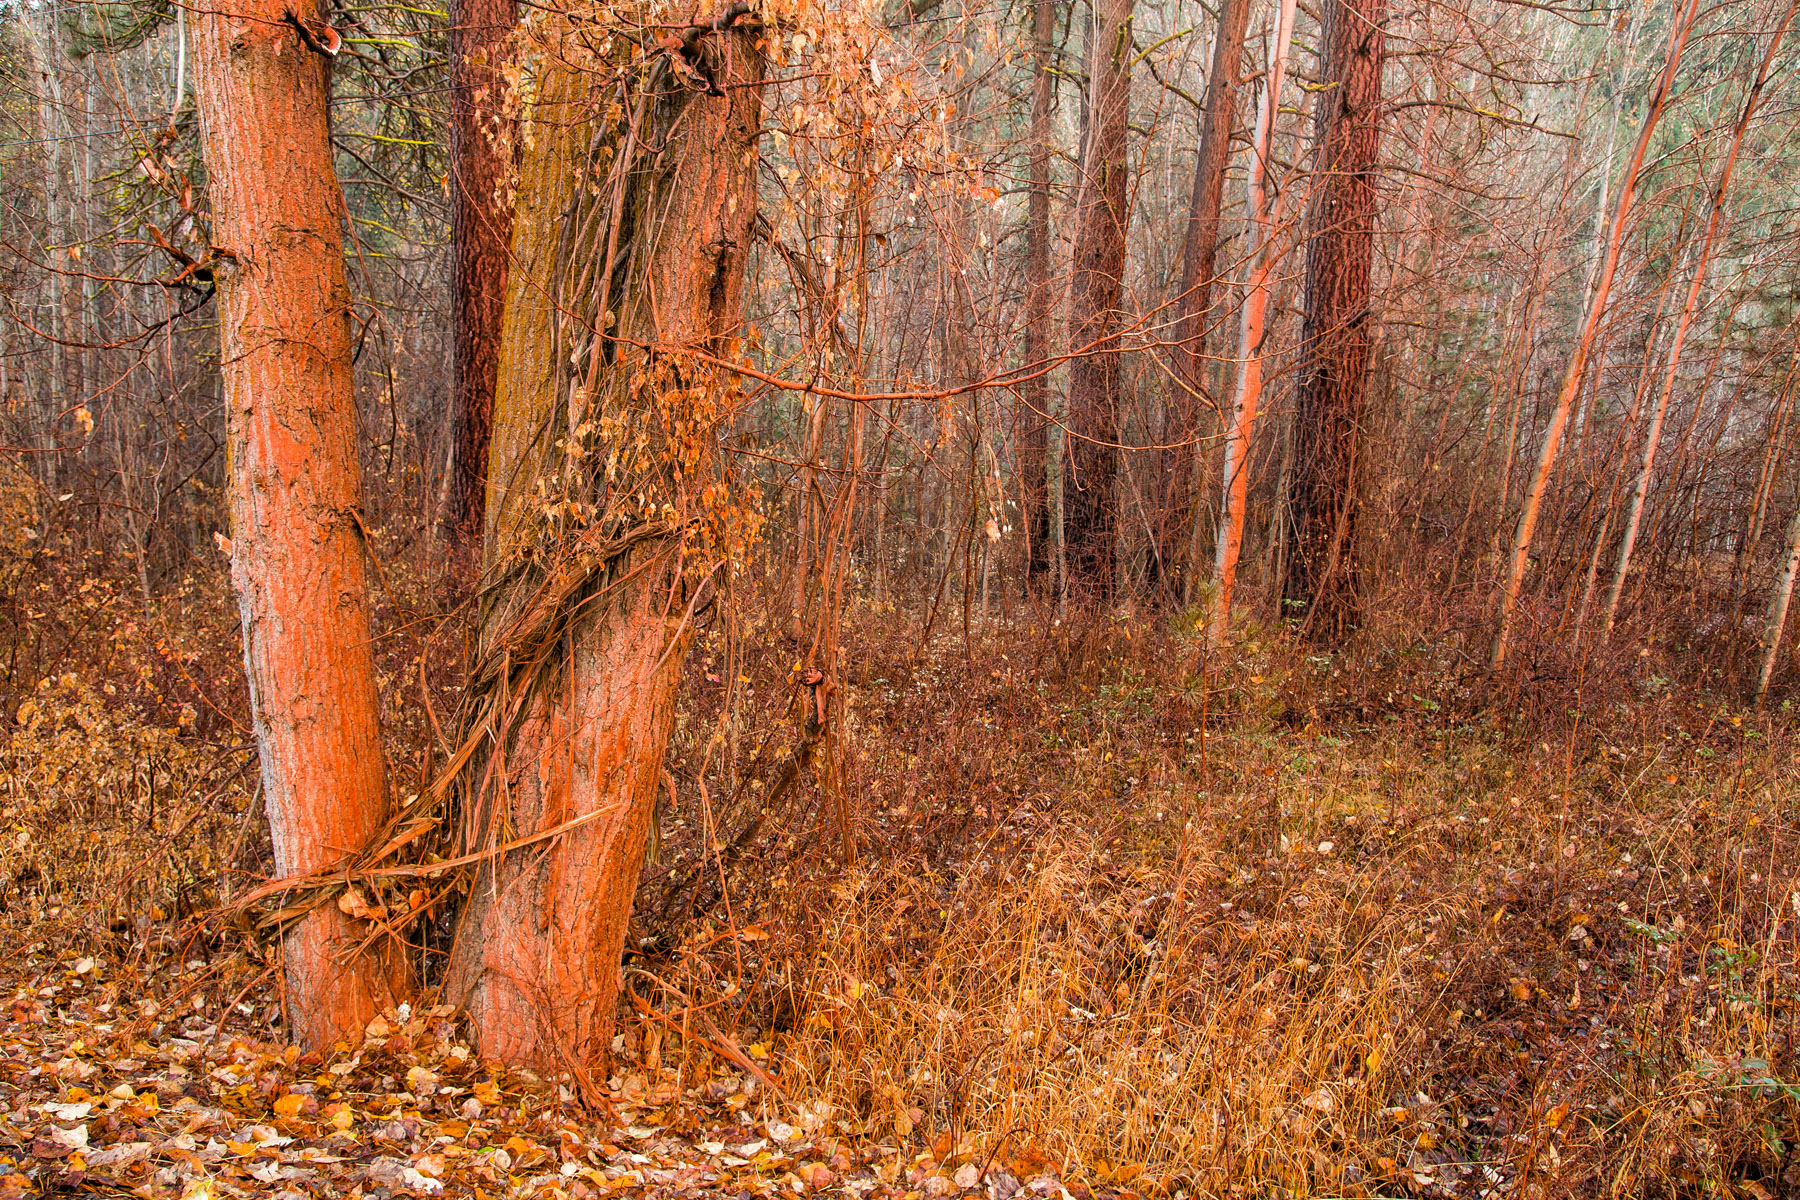 Conservation: Flame retardant dropped from firefighting planes still covers trees after a fire near Twisp, Washington